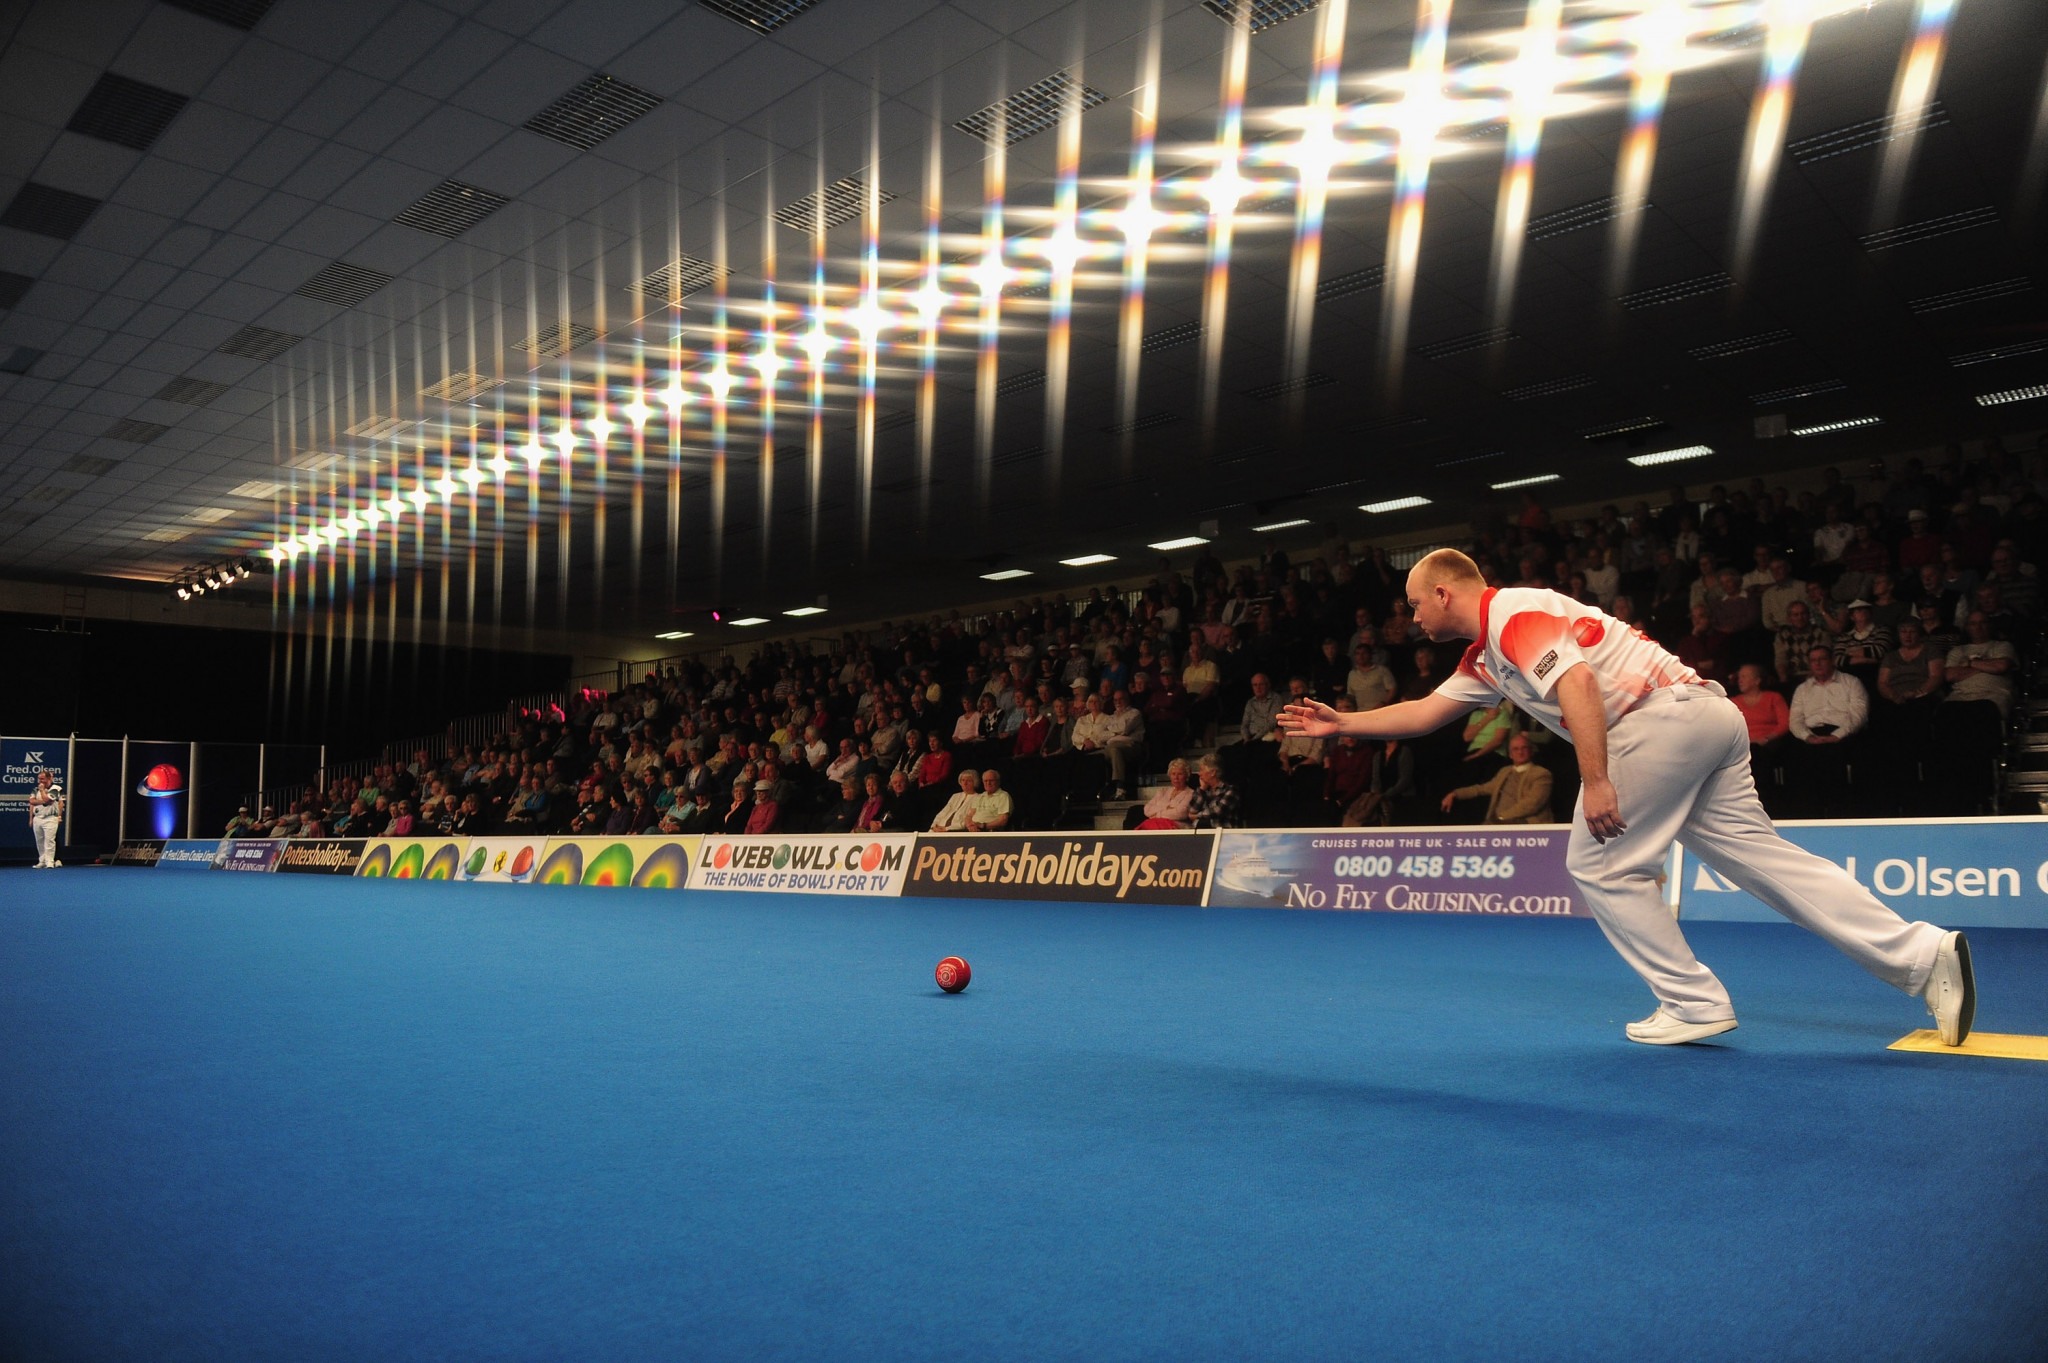 Stewart Anderson of Scotland, pictured, and Guernsey's Alison Merrien beat Australia's Ellen Ryan and England's Robert Paxton at the World Indoor Bowls Championships 